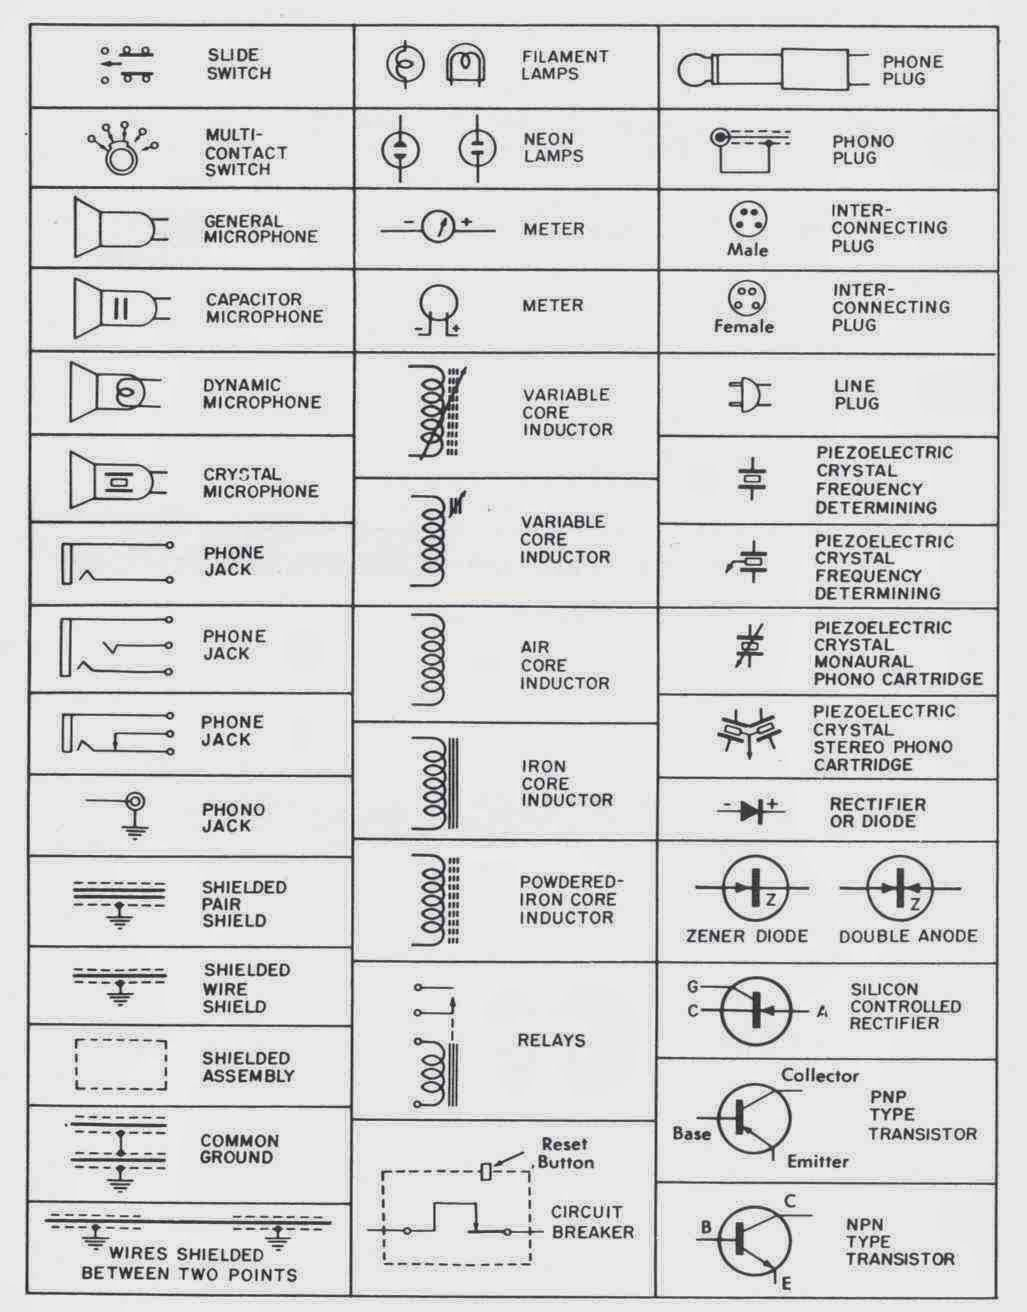 Electrical Symbols 11 ~ Electrical Engineering Pics | ELECTRIC | Electrical symbols, Electronic